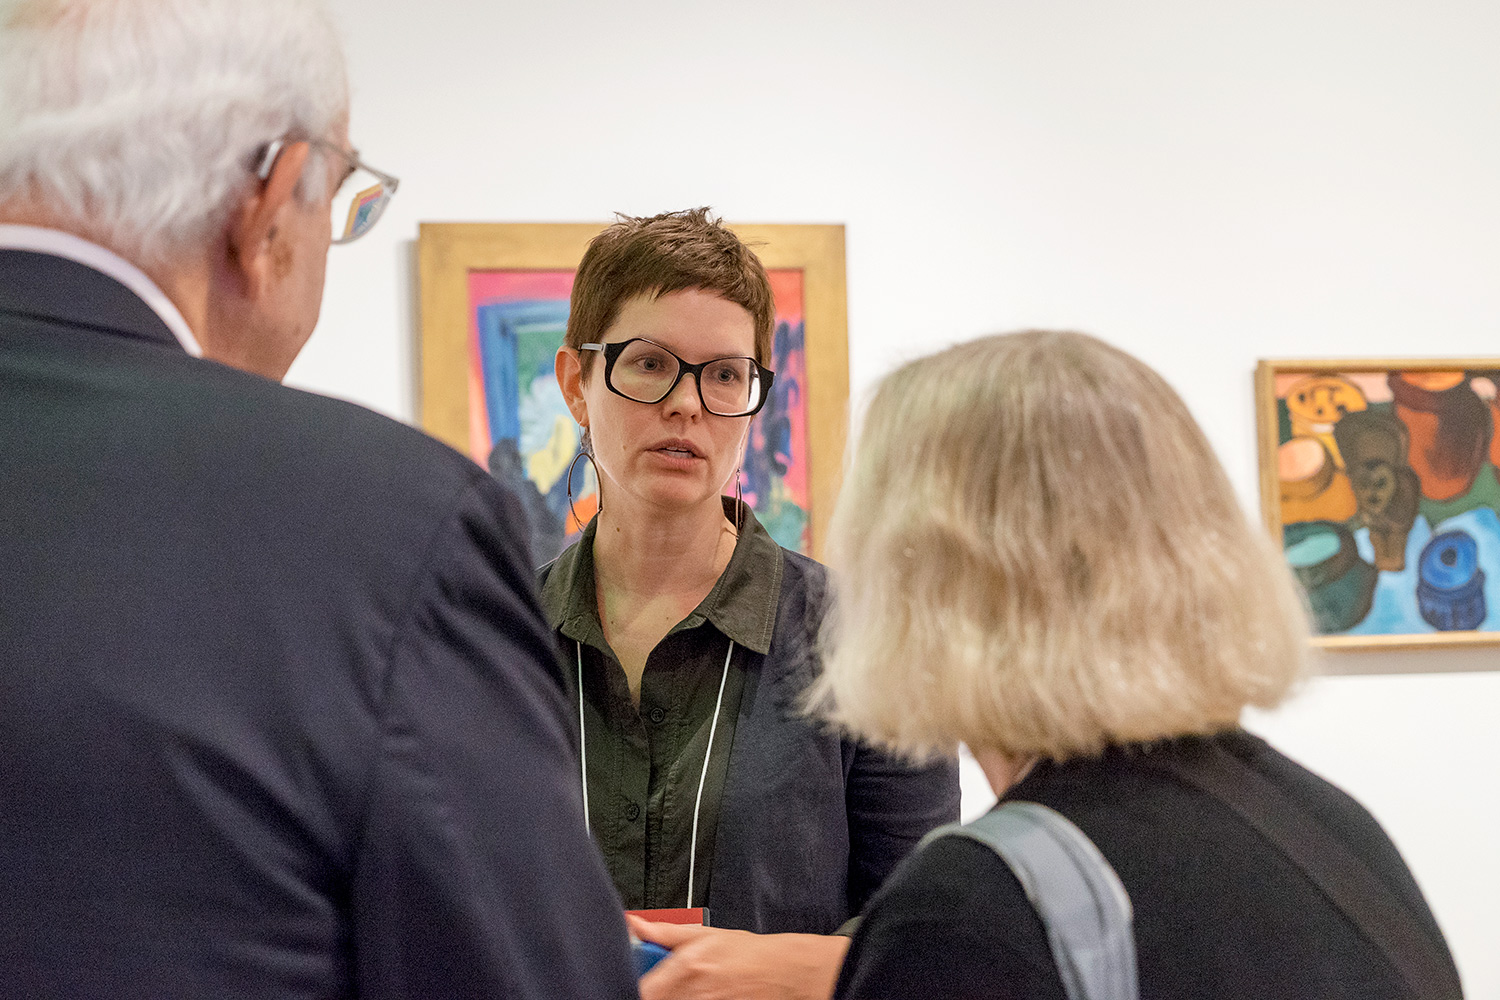 Lynette Roth speaks in the Busch-Reisinger Museum galleries with guests during the Art & Ideas program.